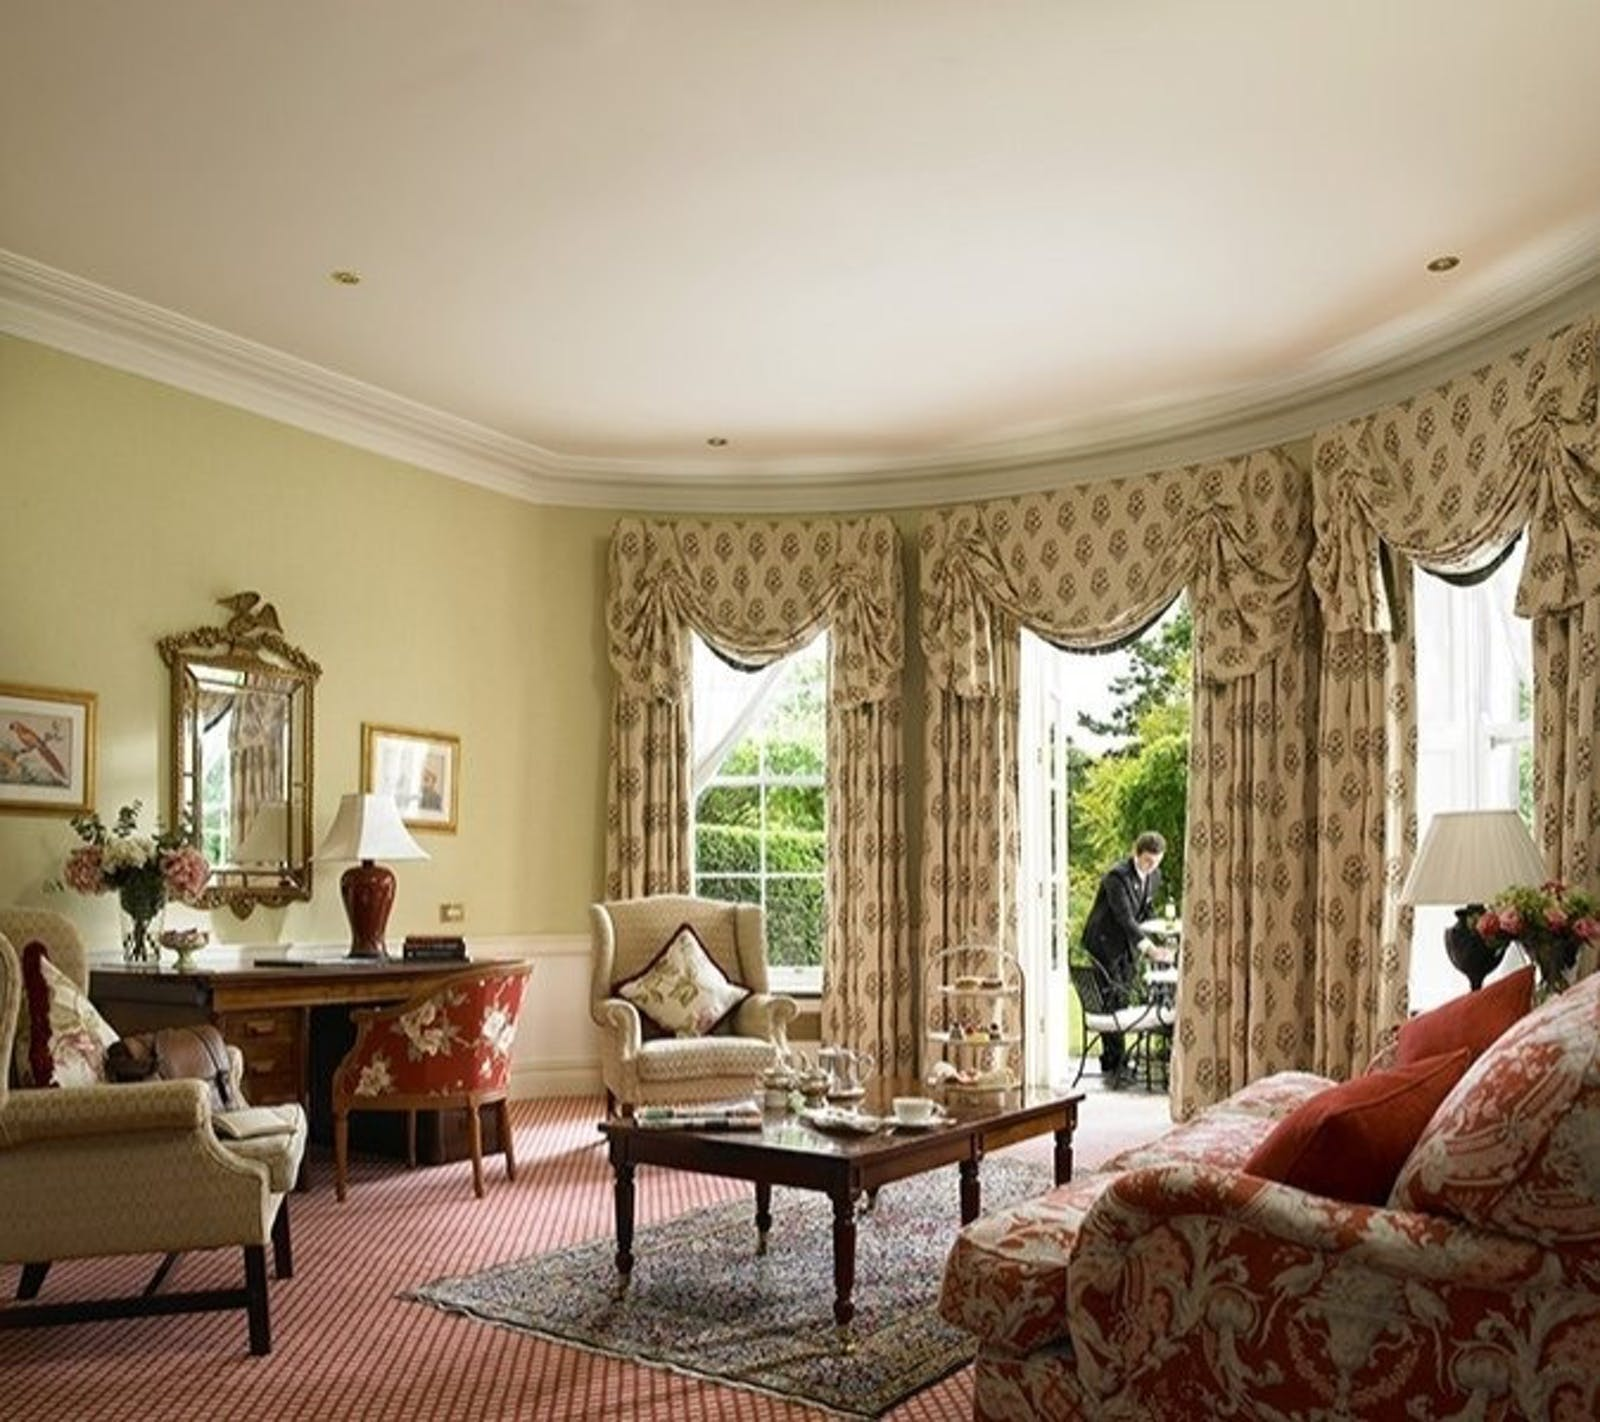 The Imperial Suite at The K Club Hotel, Ireland